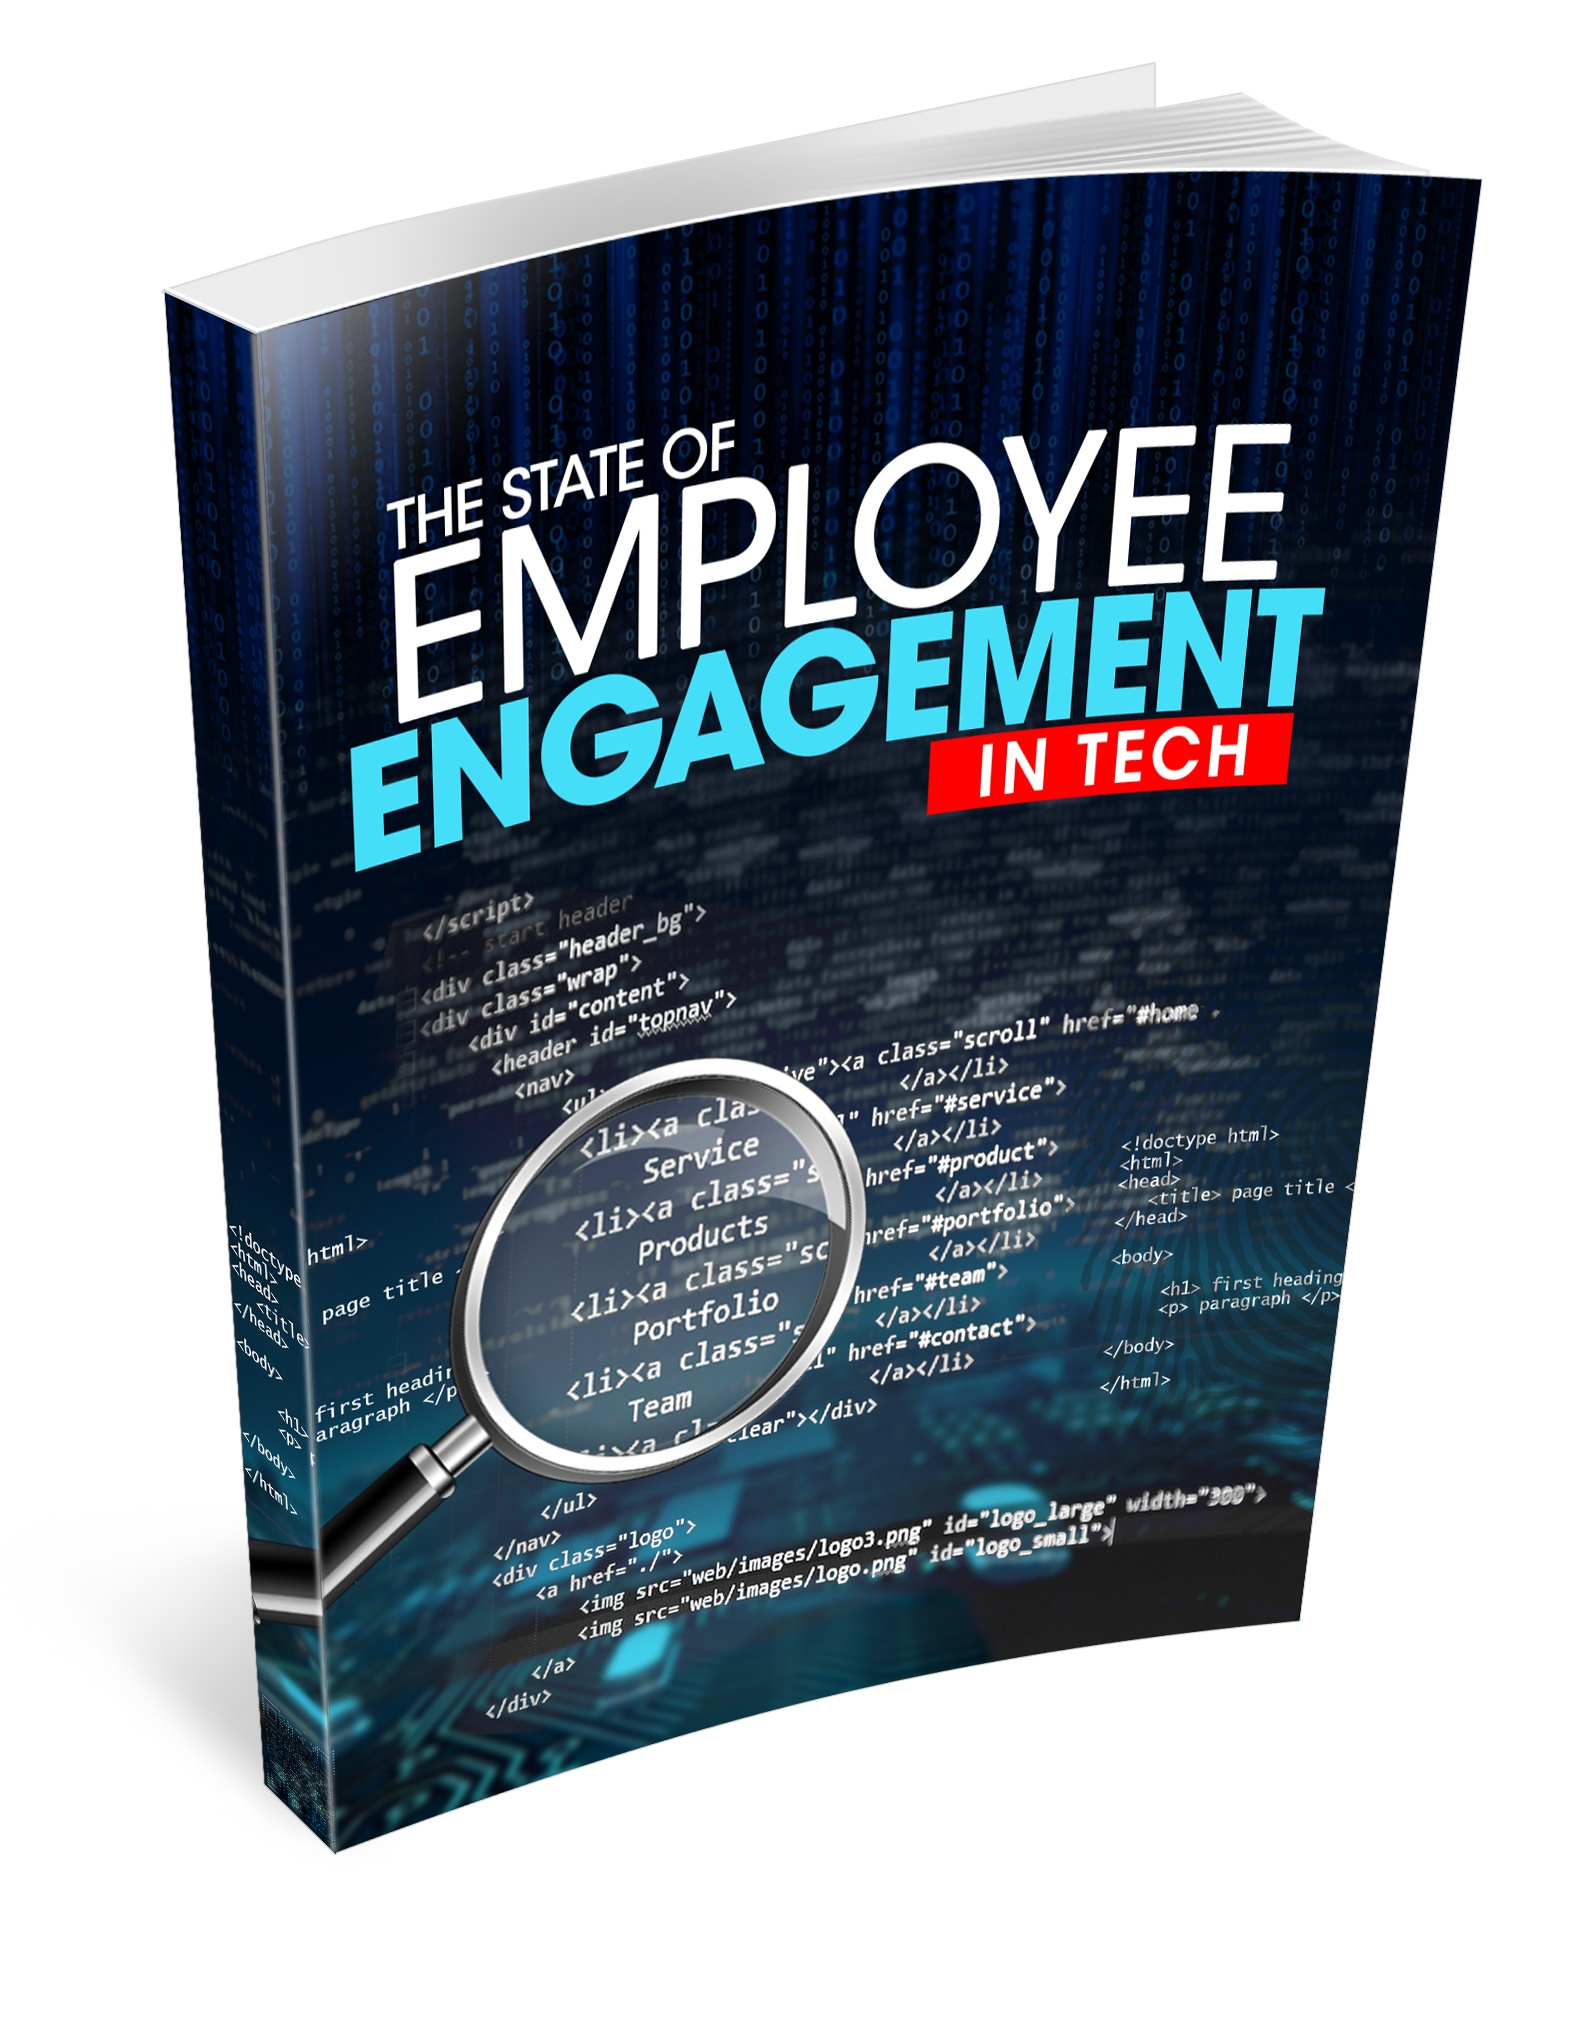 The State of Employee Engagement in Tech by TINYpulse